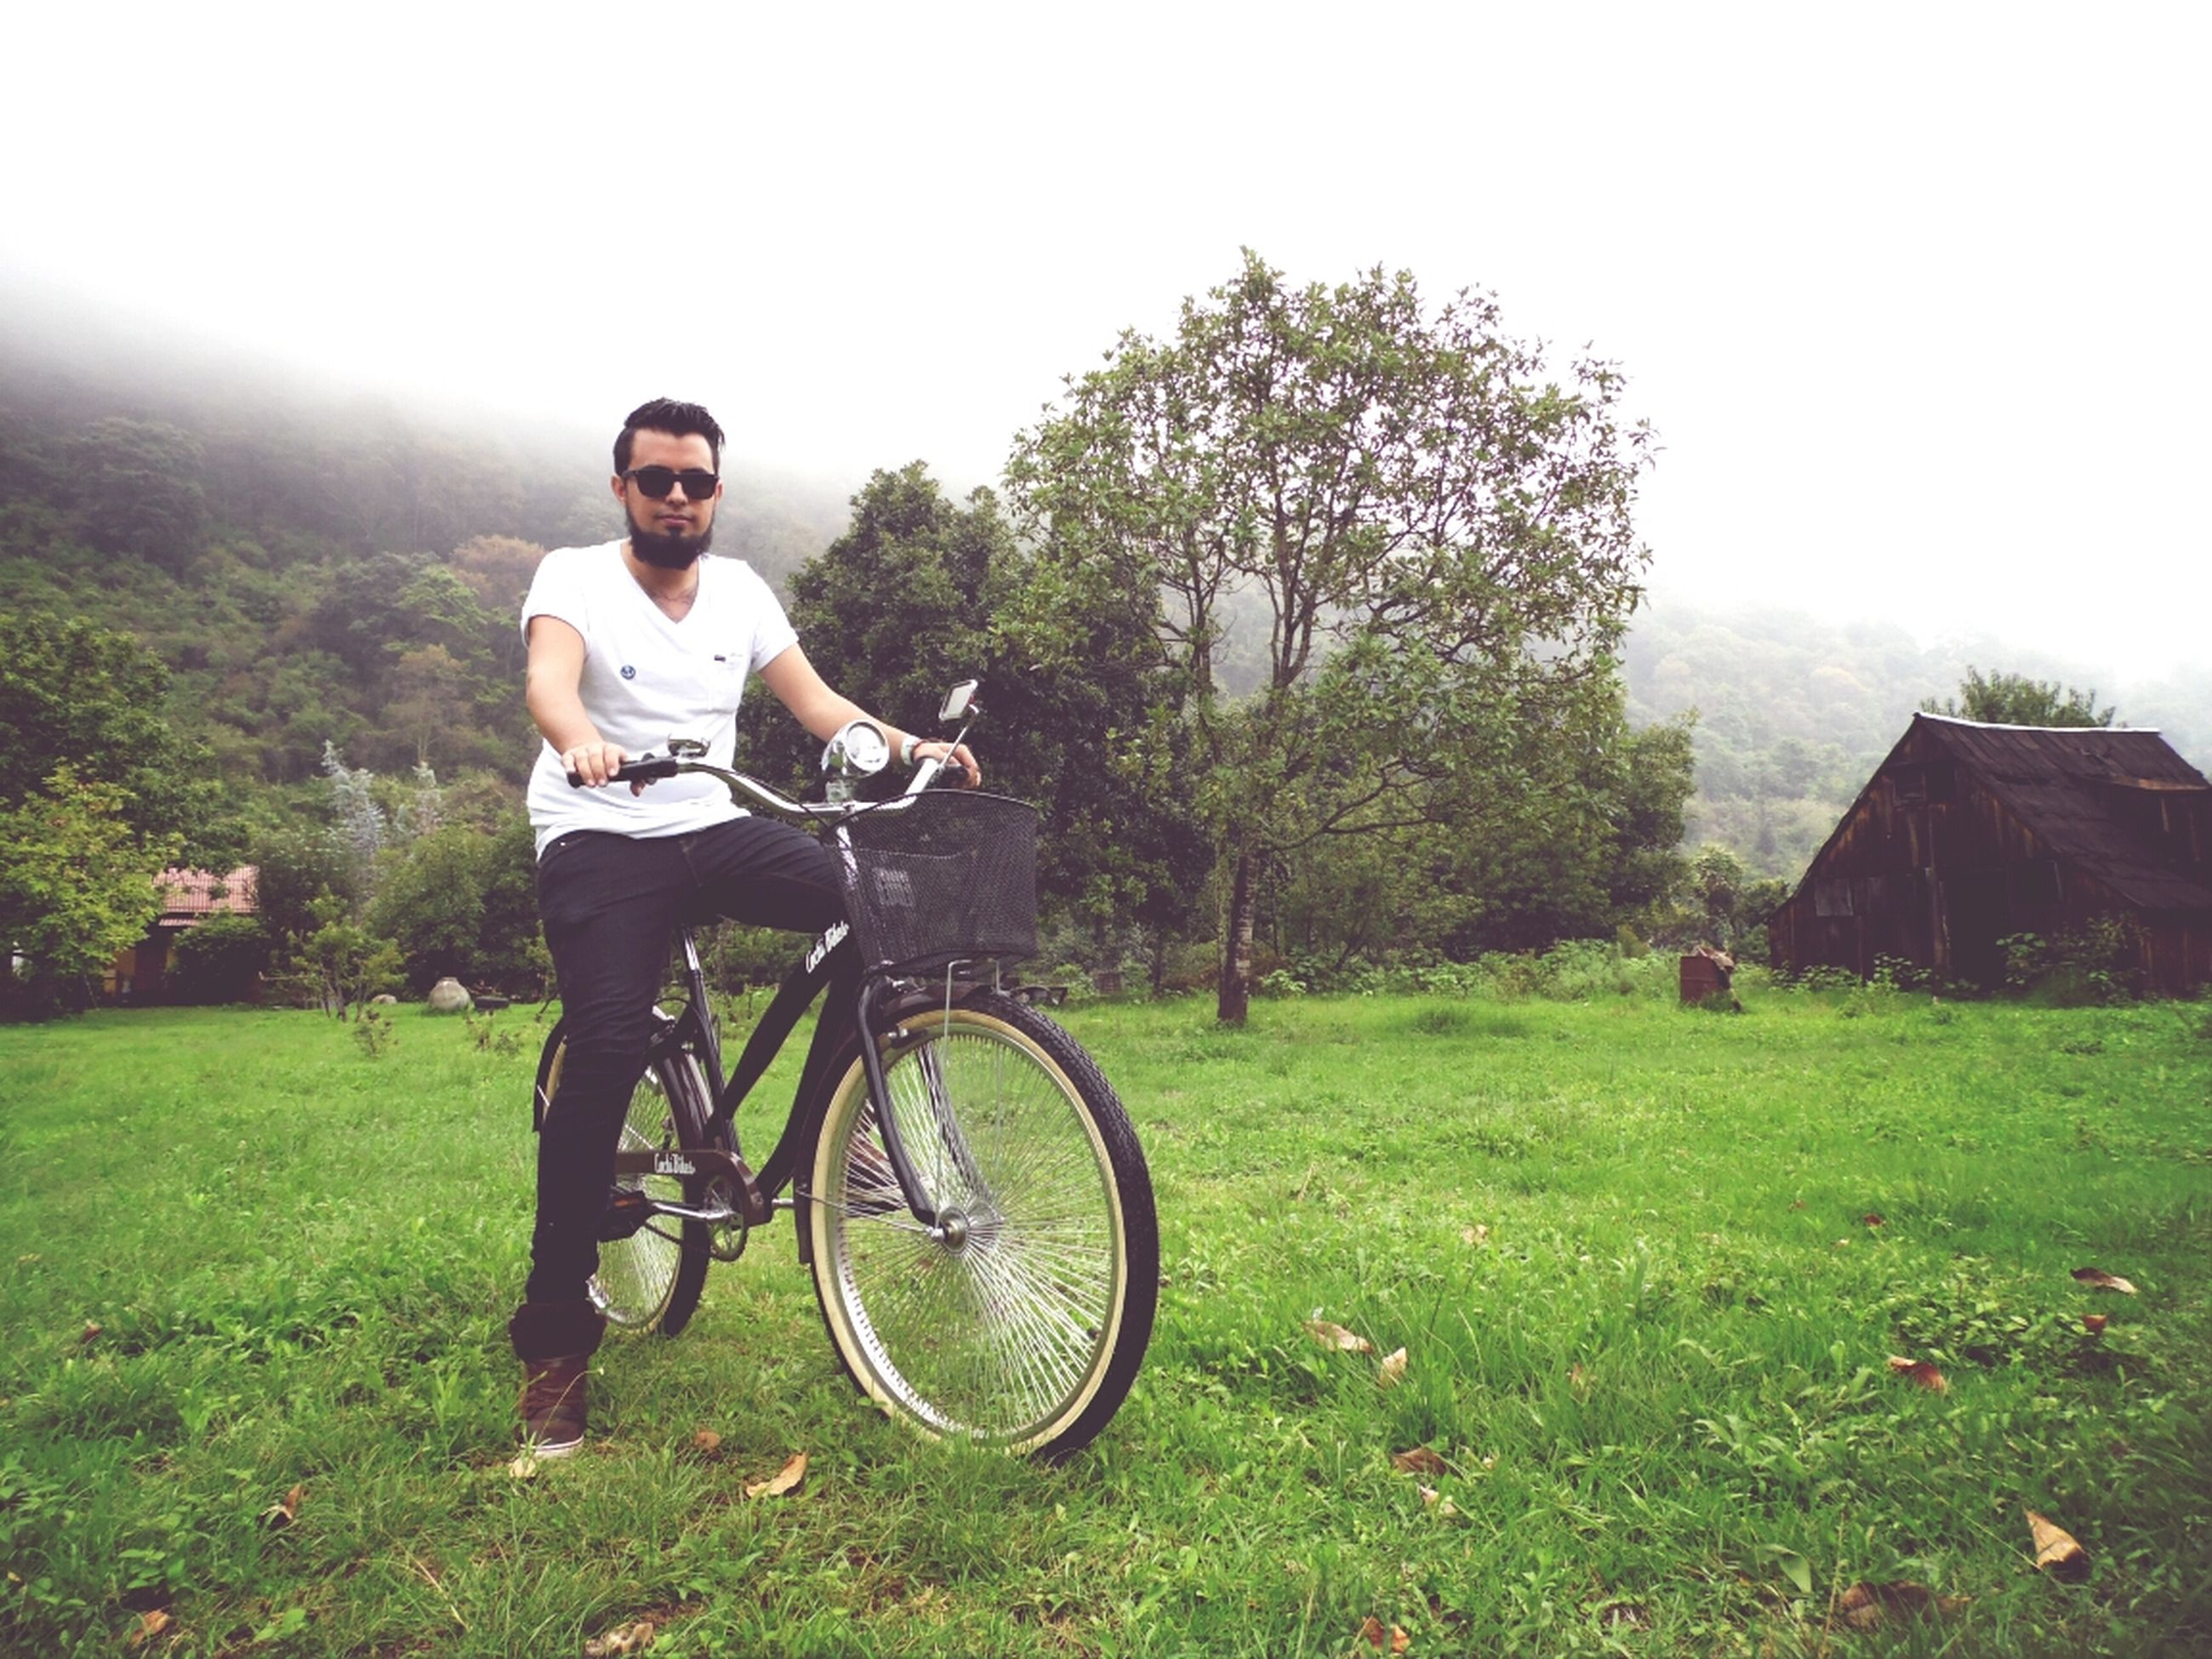 bicycle, full length, lifestyles, grass, land vehicle, transportation, mode of transport, leisure activity, casual clothing, young adult, tree, person, side view, riding, field, young men, standing, day